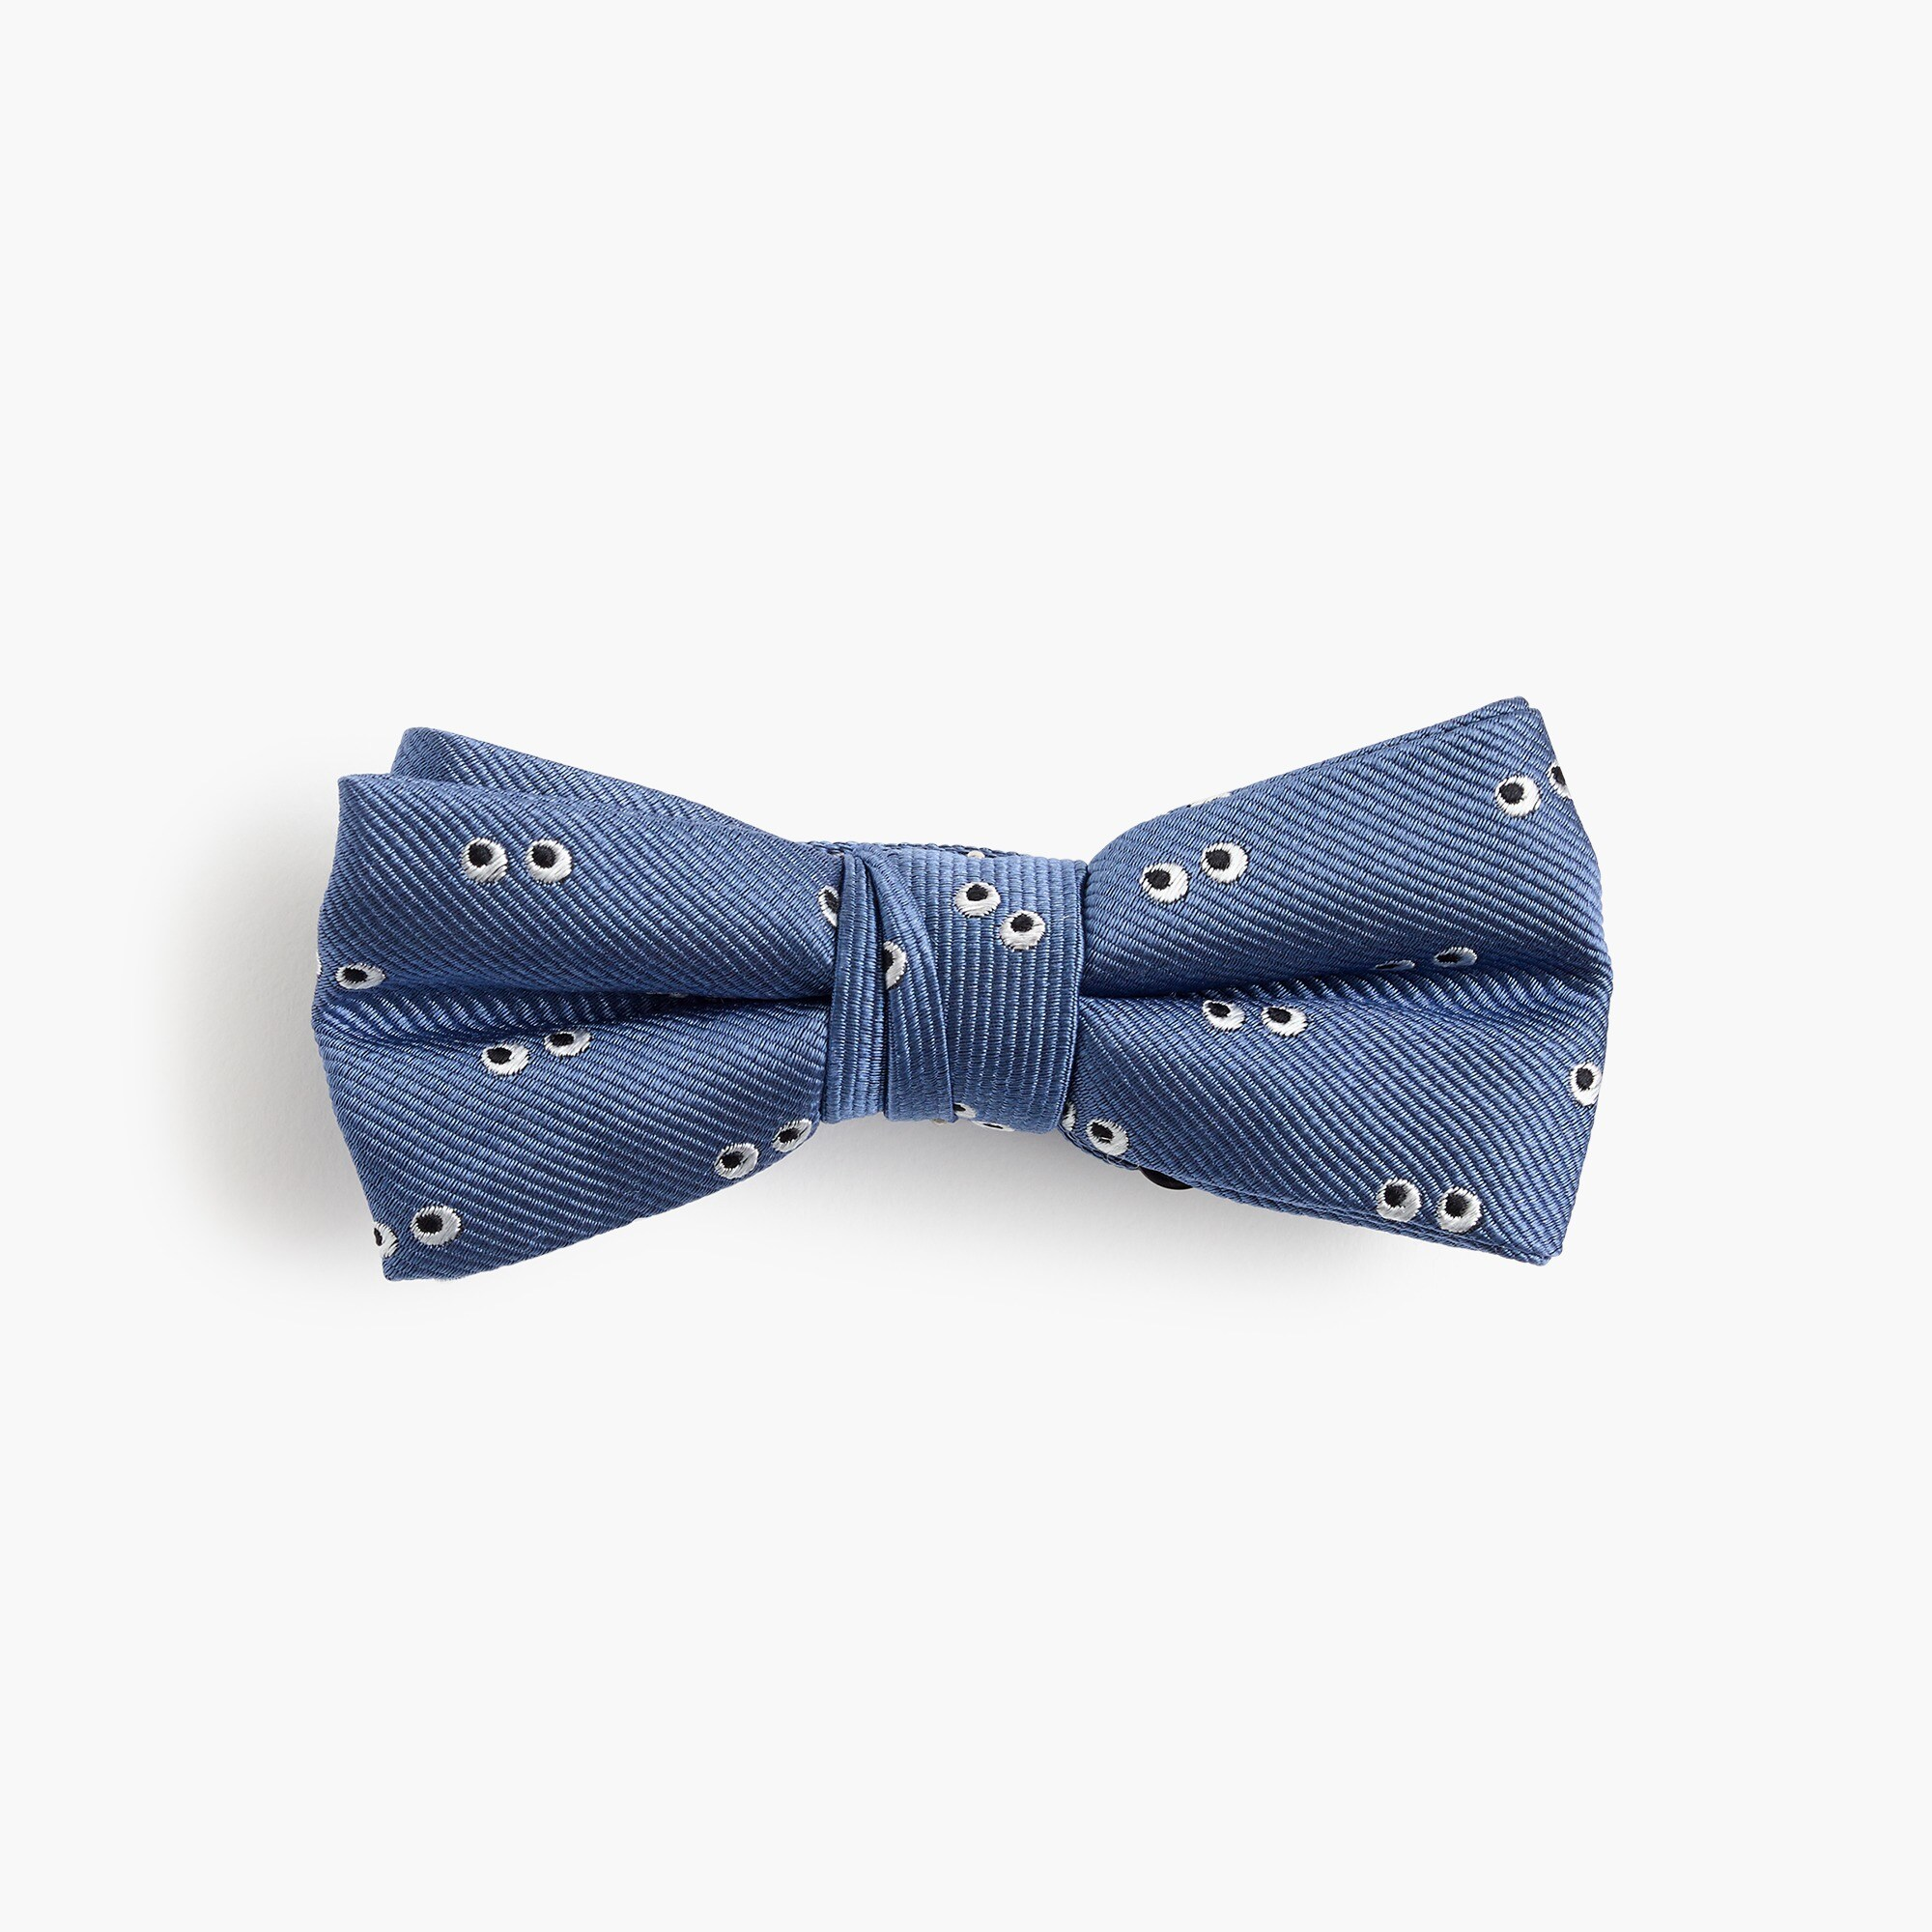 Boys' critter silk bow tie in Max the Monster